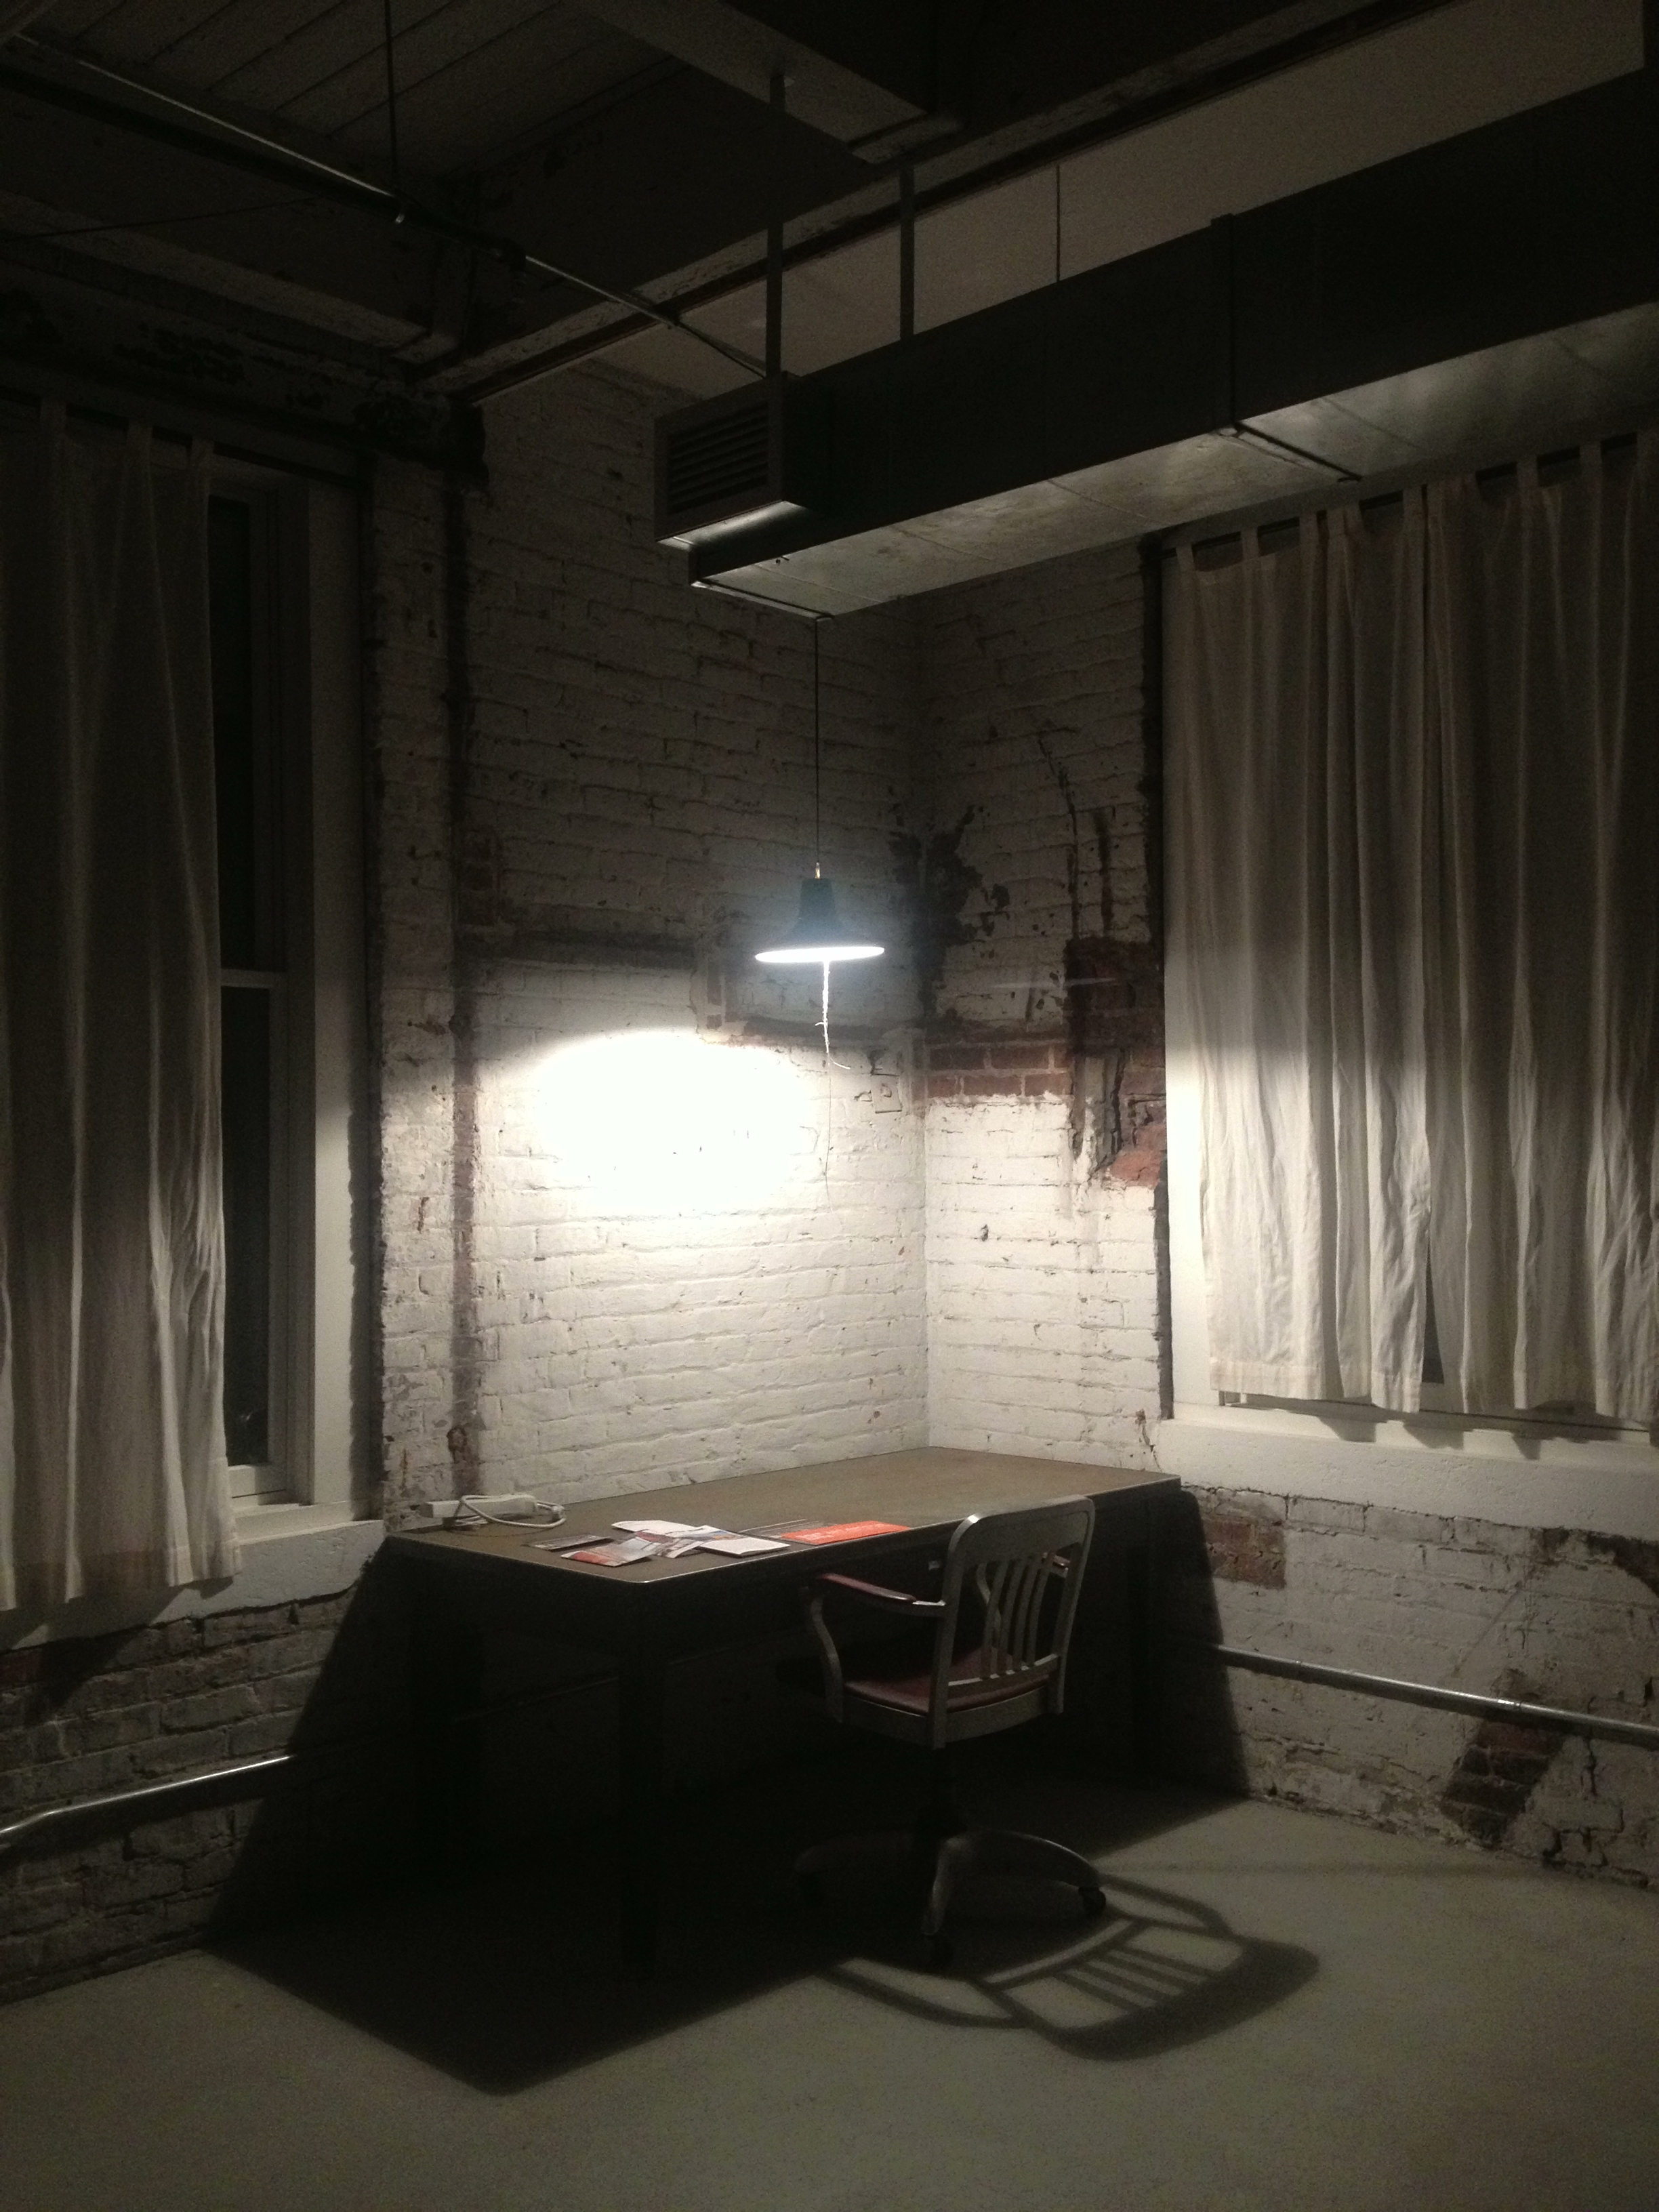 It was really nice, with tall ceilings and huge windows, an archetype of the artist's loft.